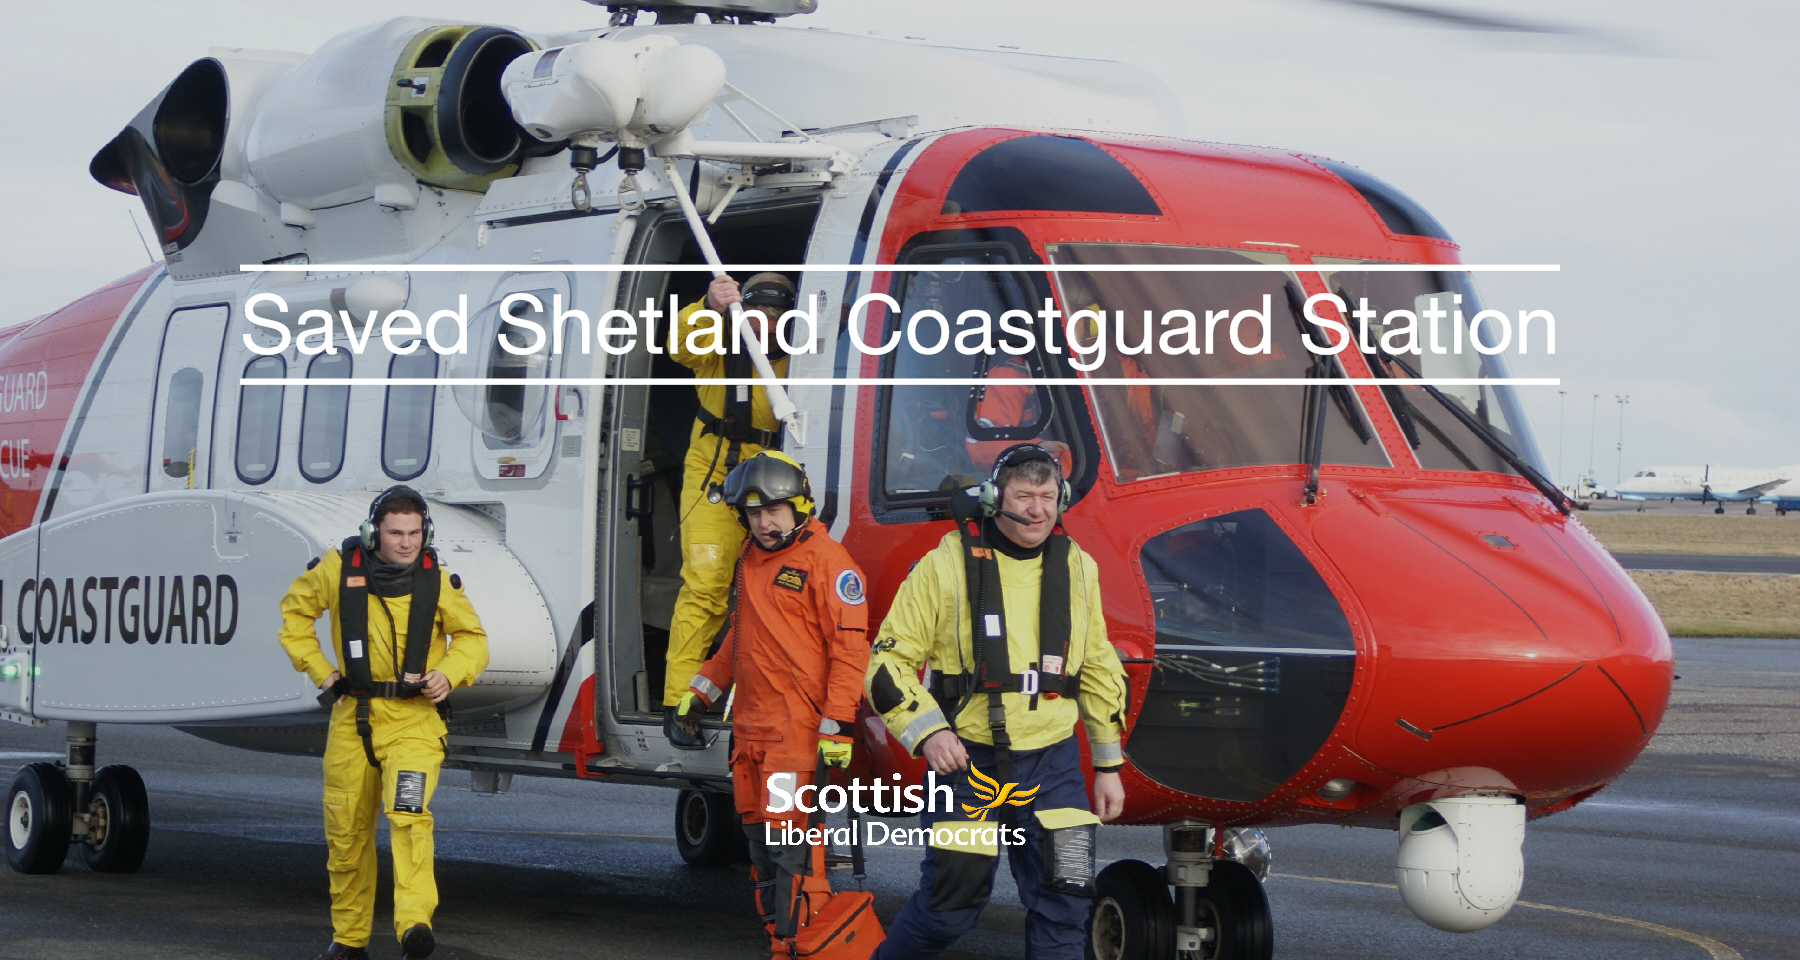 Saved Shetland Coastguard Station